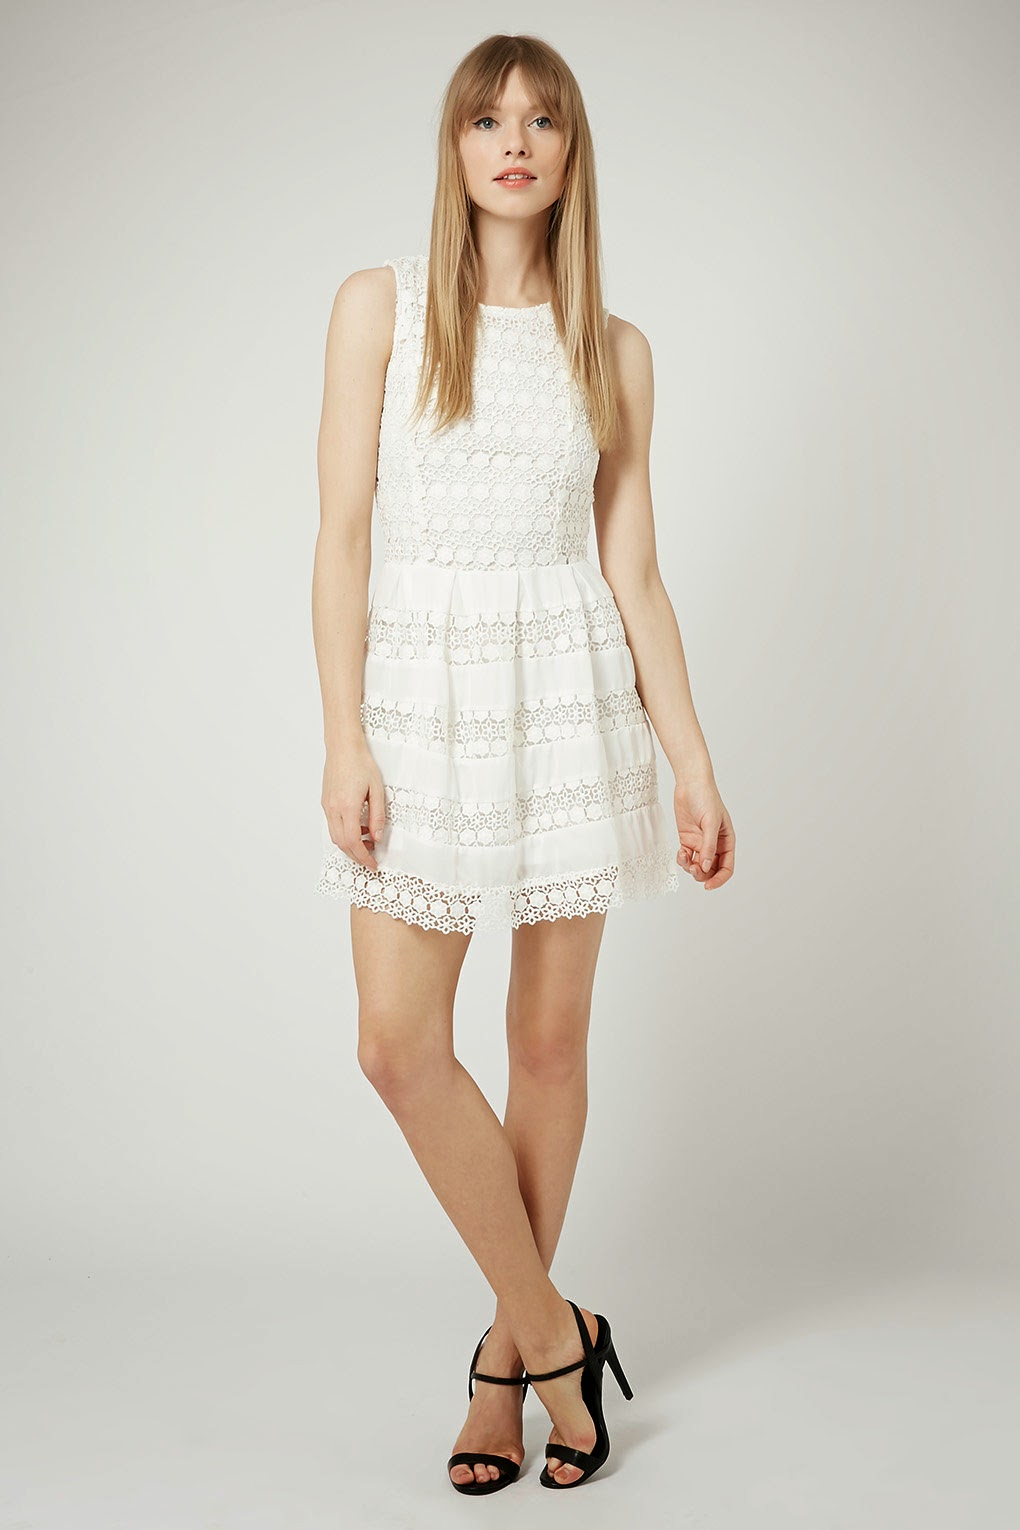 white crochet dress, rare crochet dress,